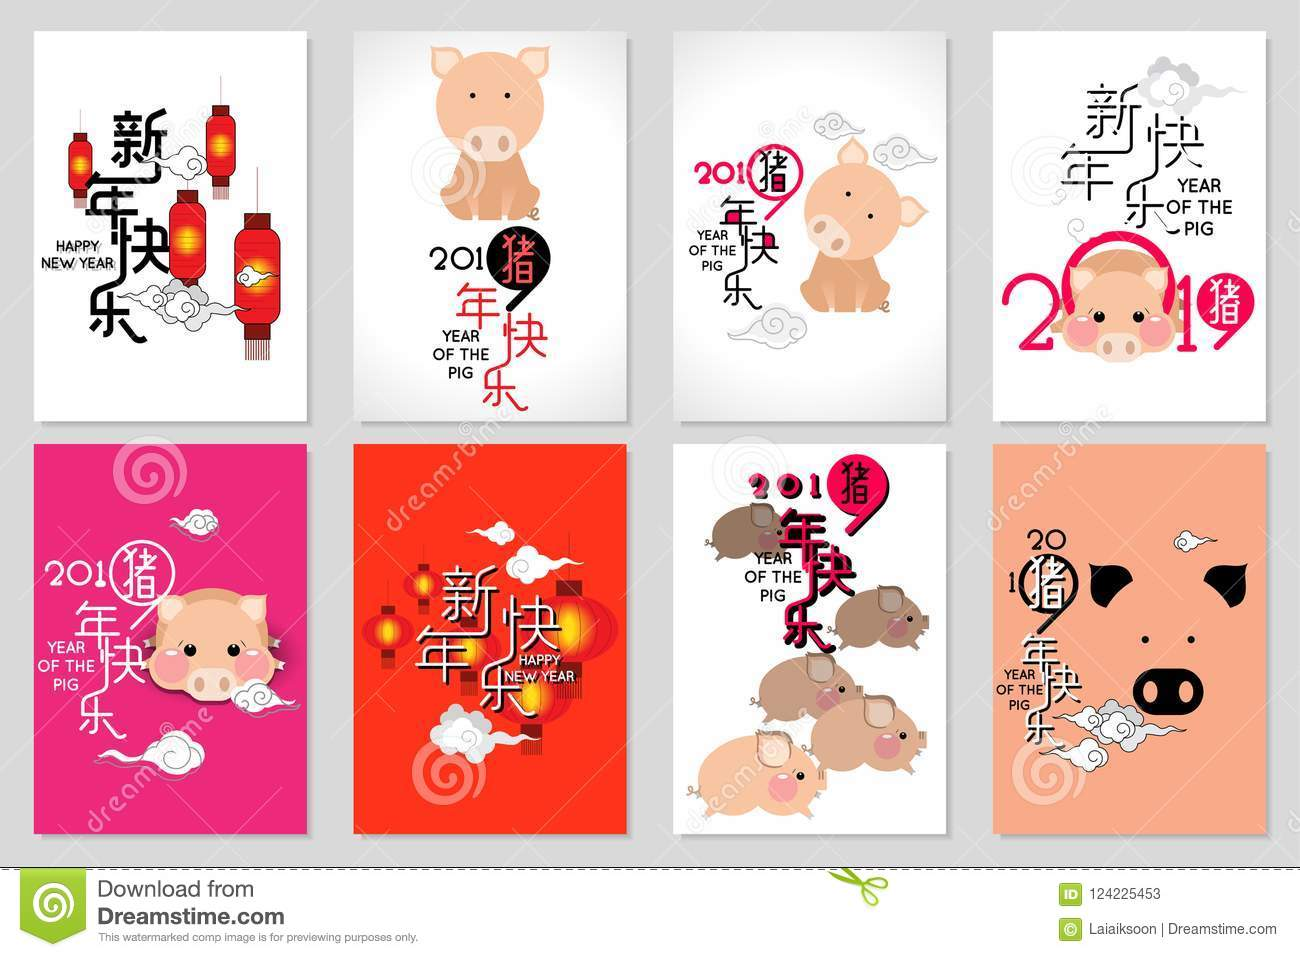 Happy Chinese New Year 2019 Year Of The Pig With Cute Cartoon Pig